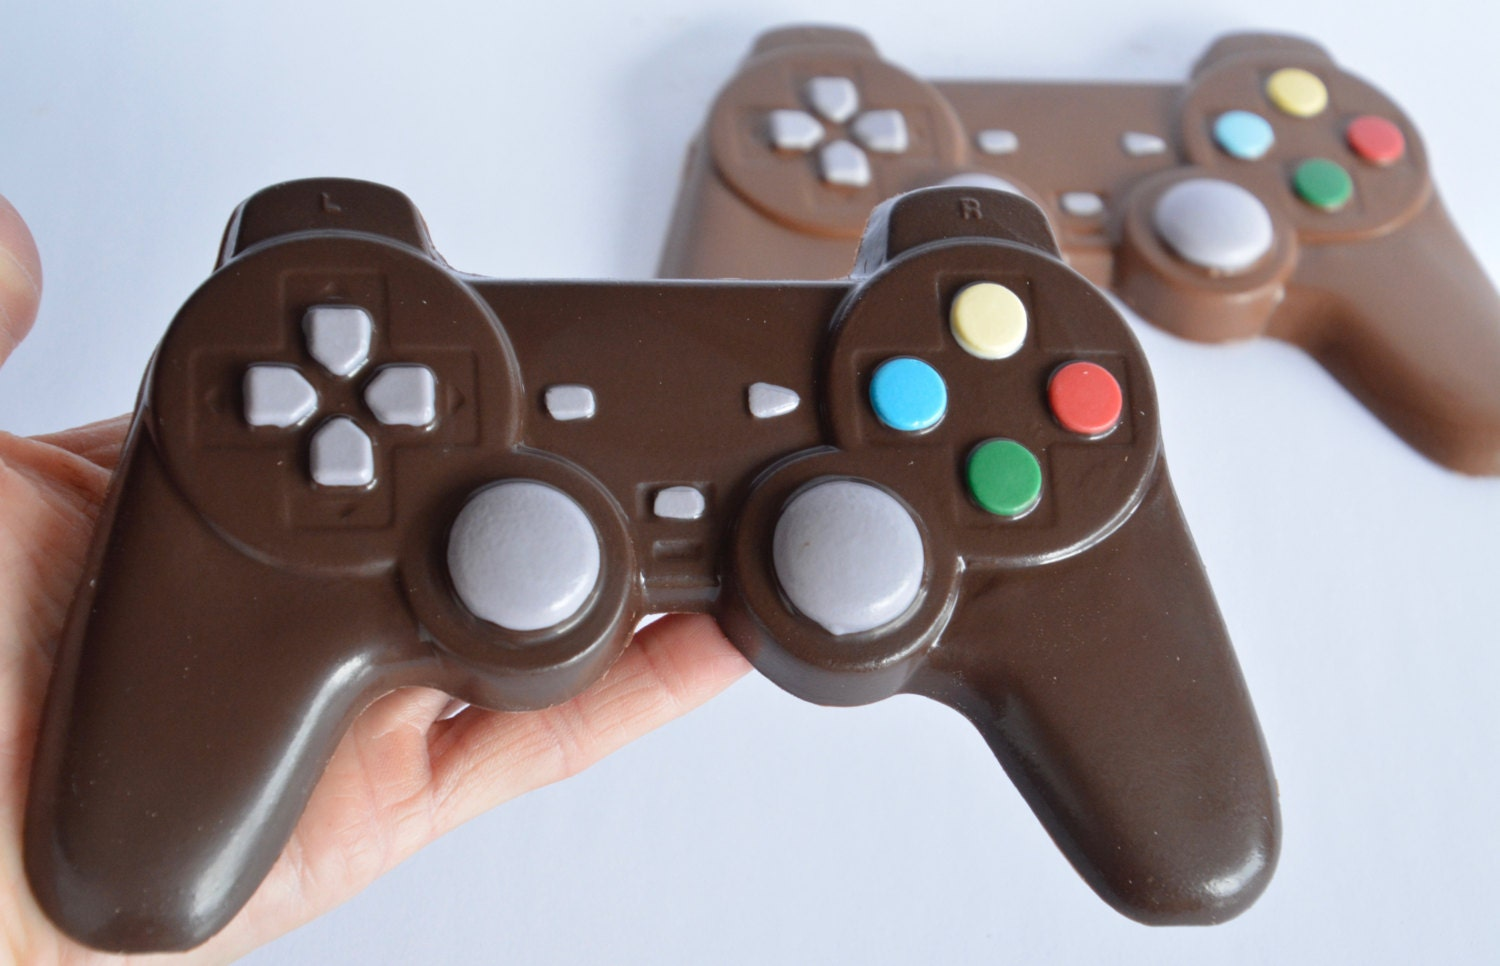 Chocolate Video Game Controller Chocolate Playstation